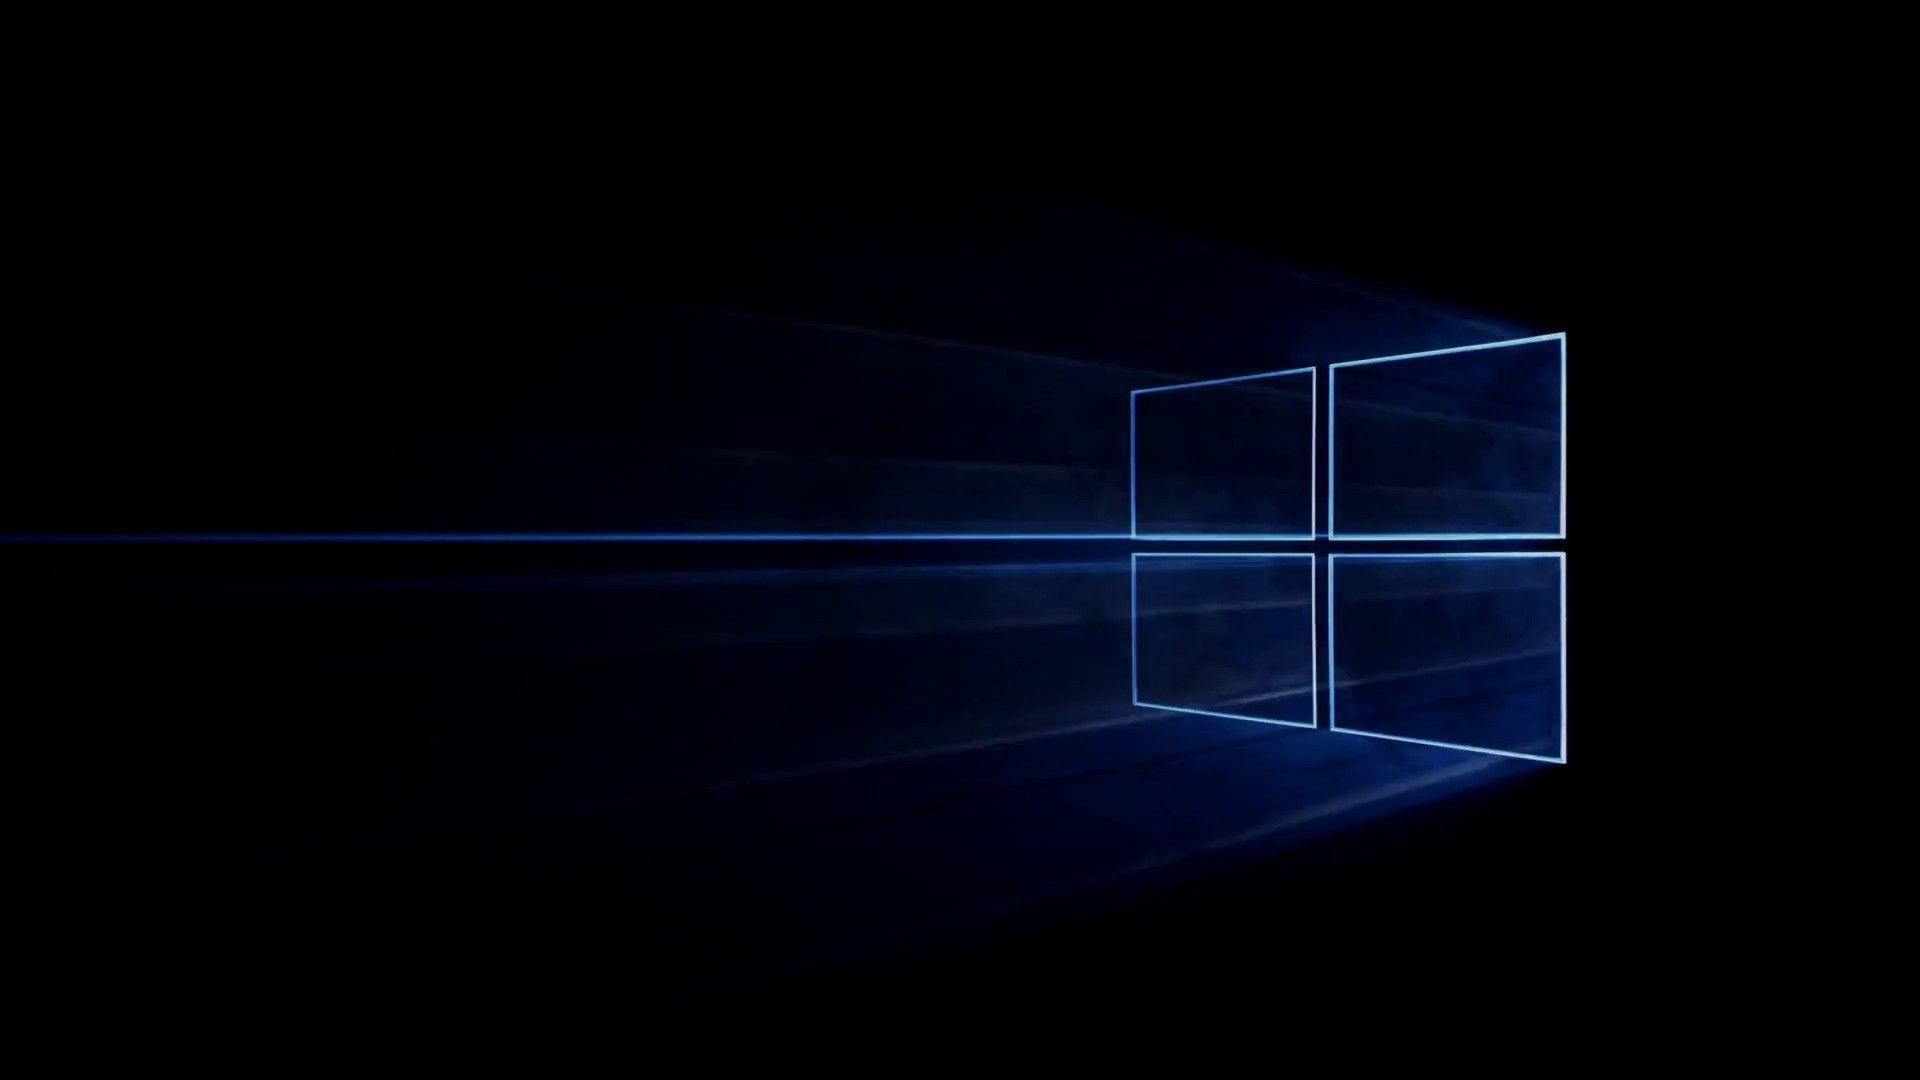 Black Windows 10 HD Wallpapers - Top